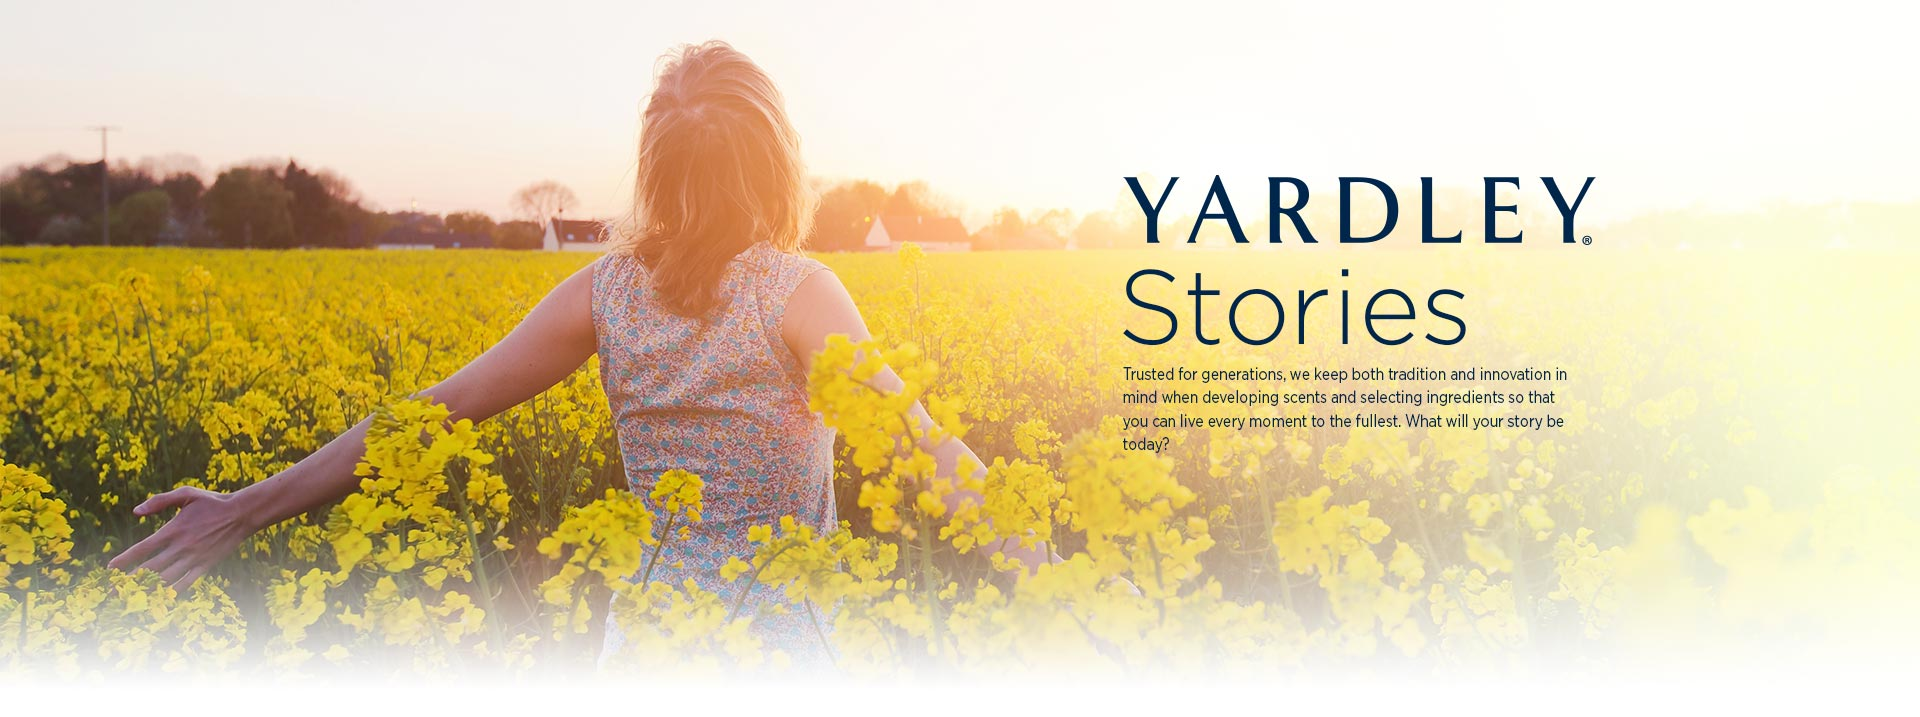 Yardley Stories